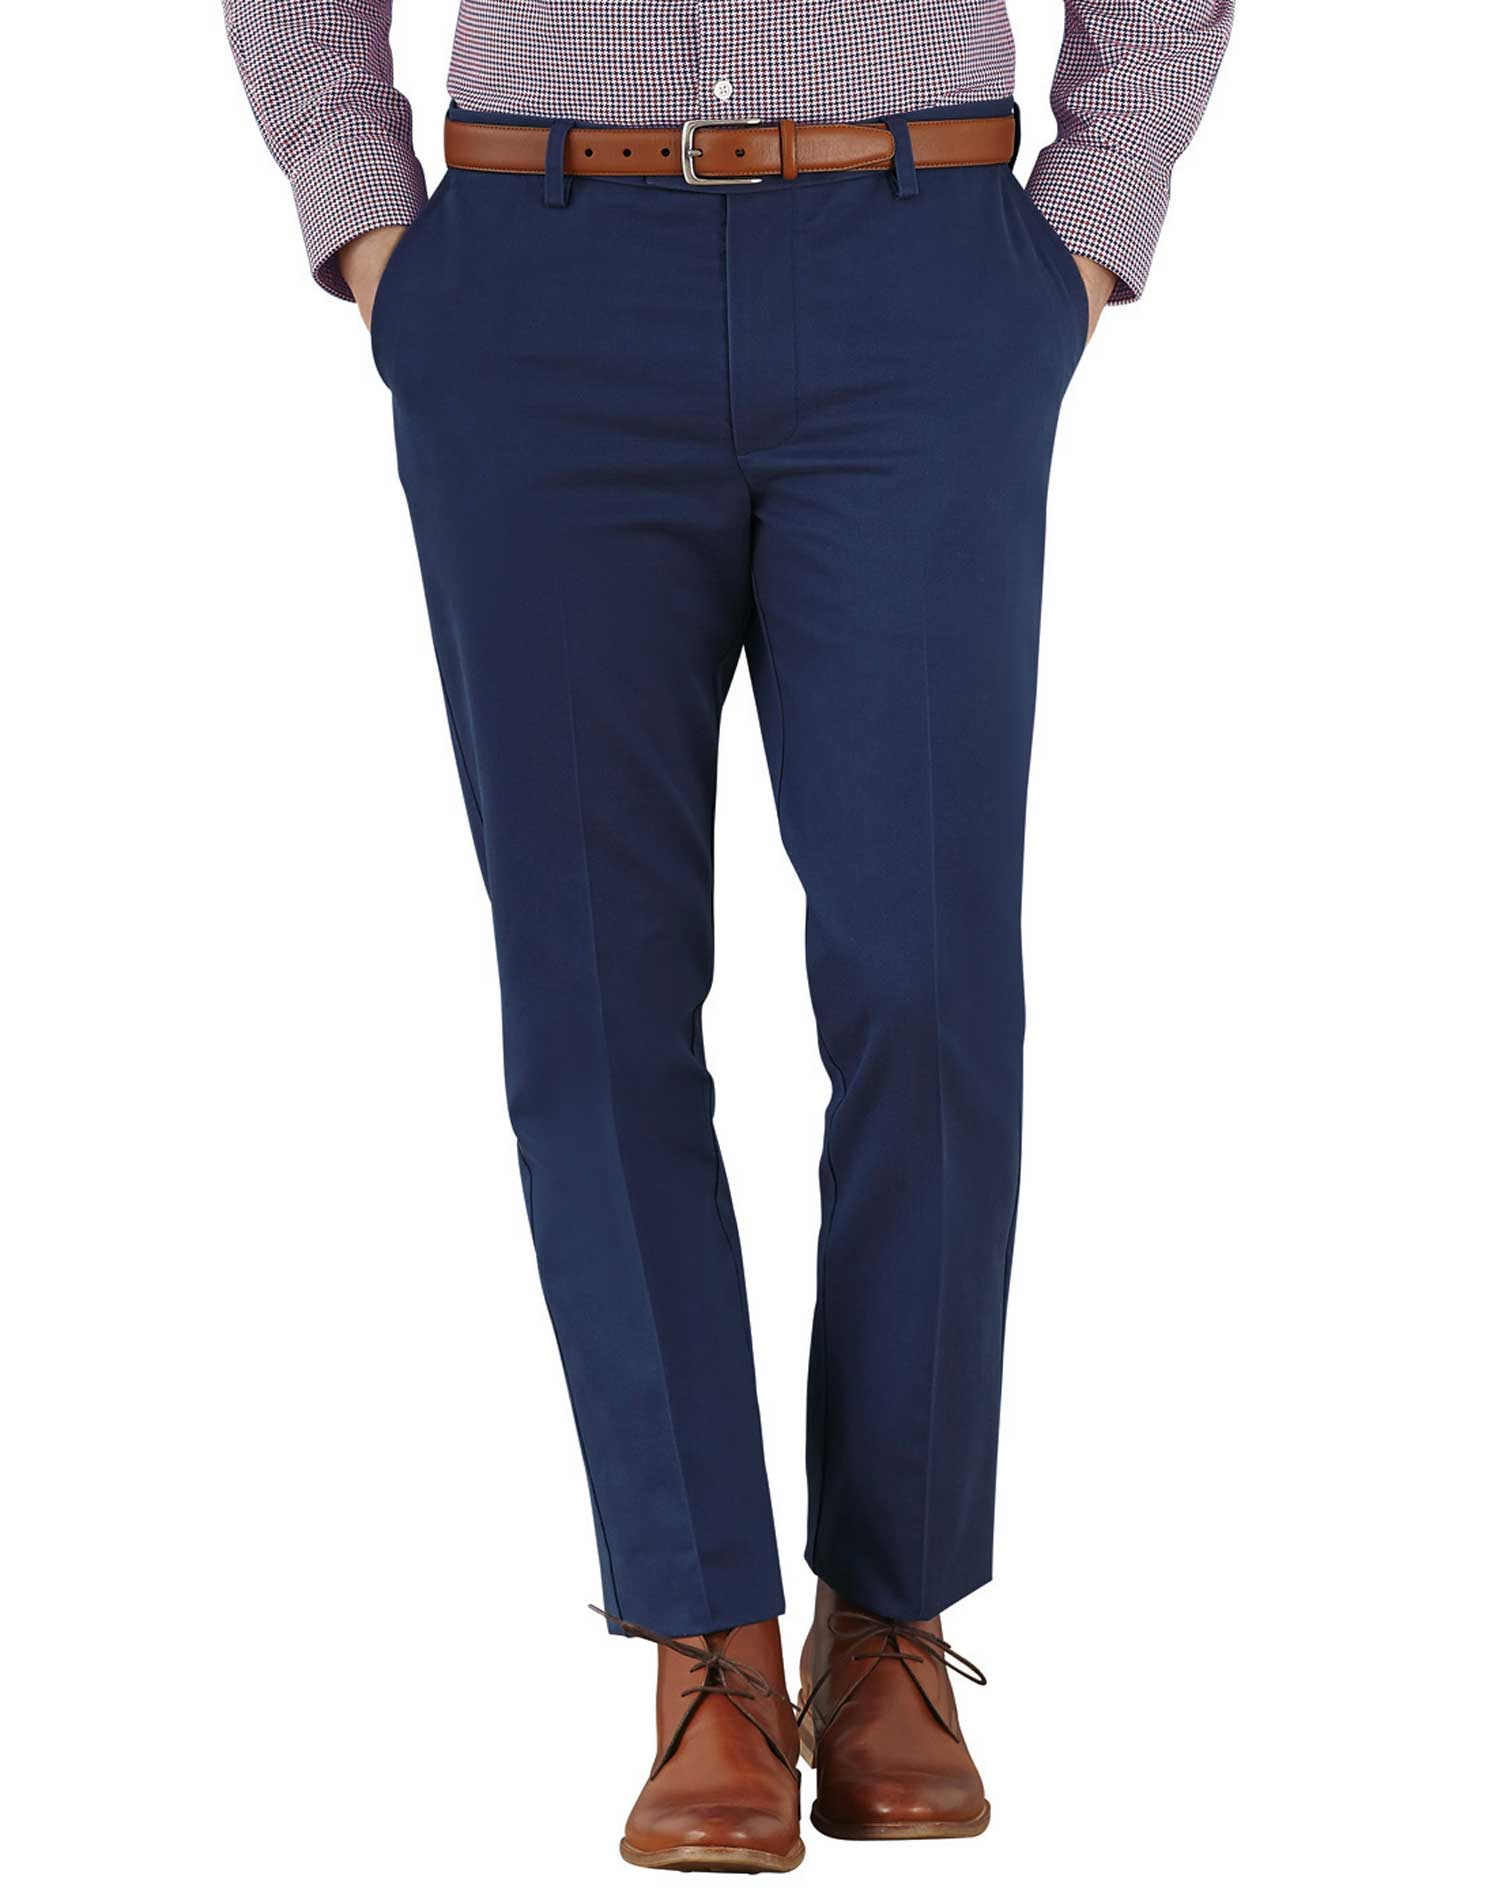 Marine Blue Extra Slim Fit Flat Front Non-Iron Cotton Chino Trousers Size W32 L38 by Charles Tyrwhit